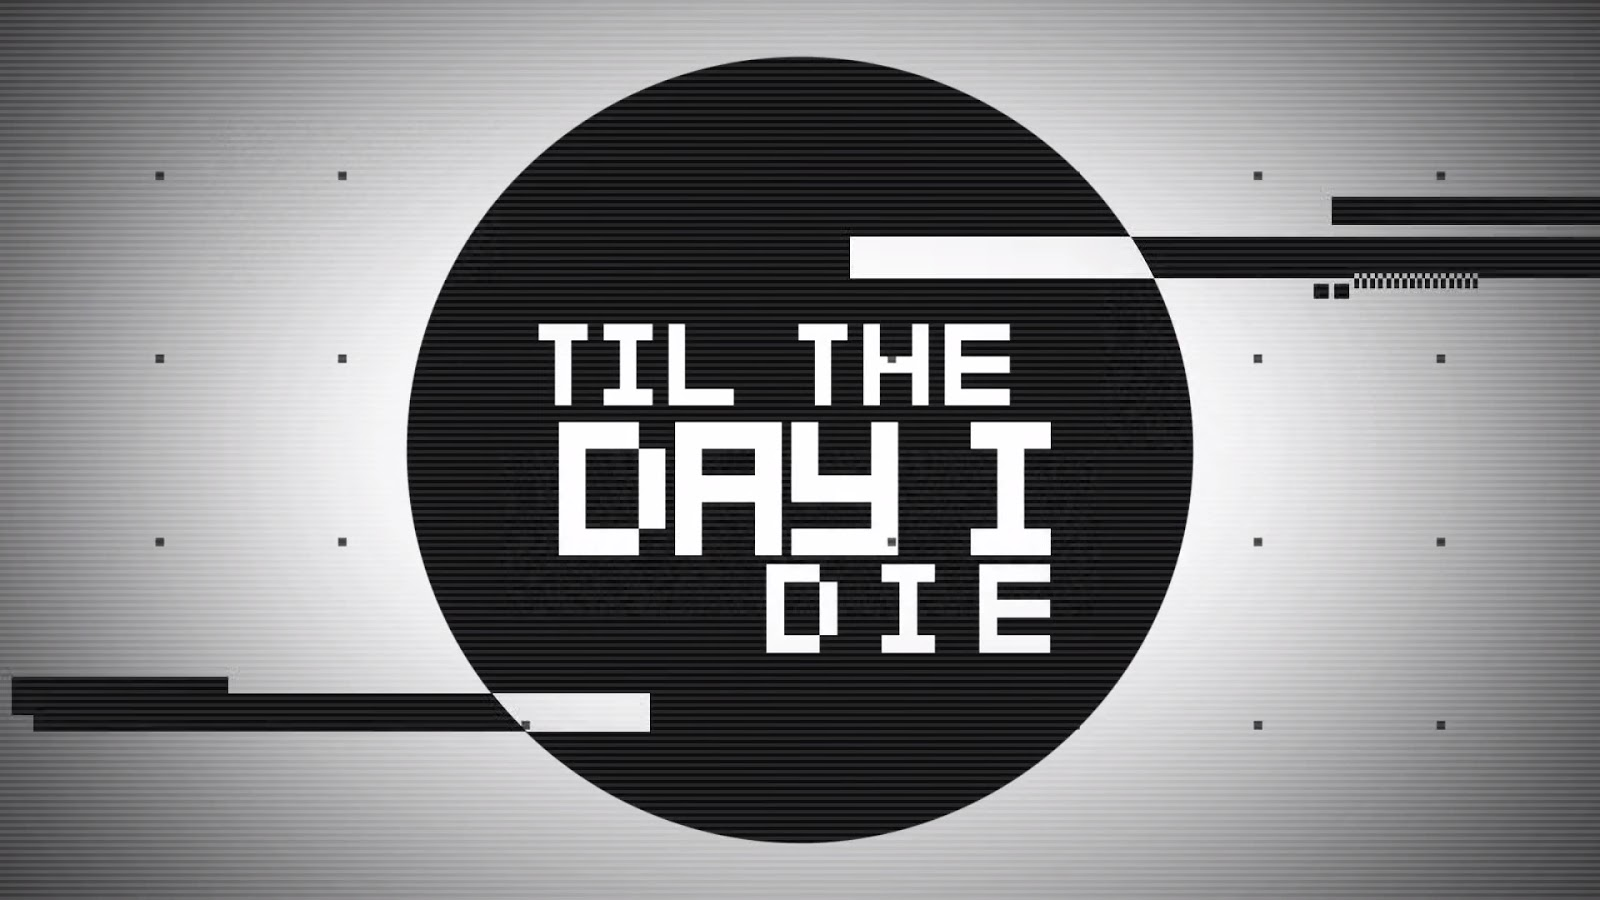 Toby Mac ft NF - Til the day I die - This is not a test